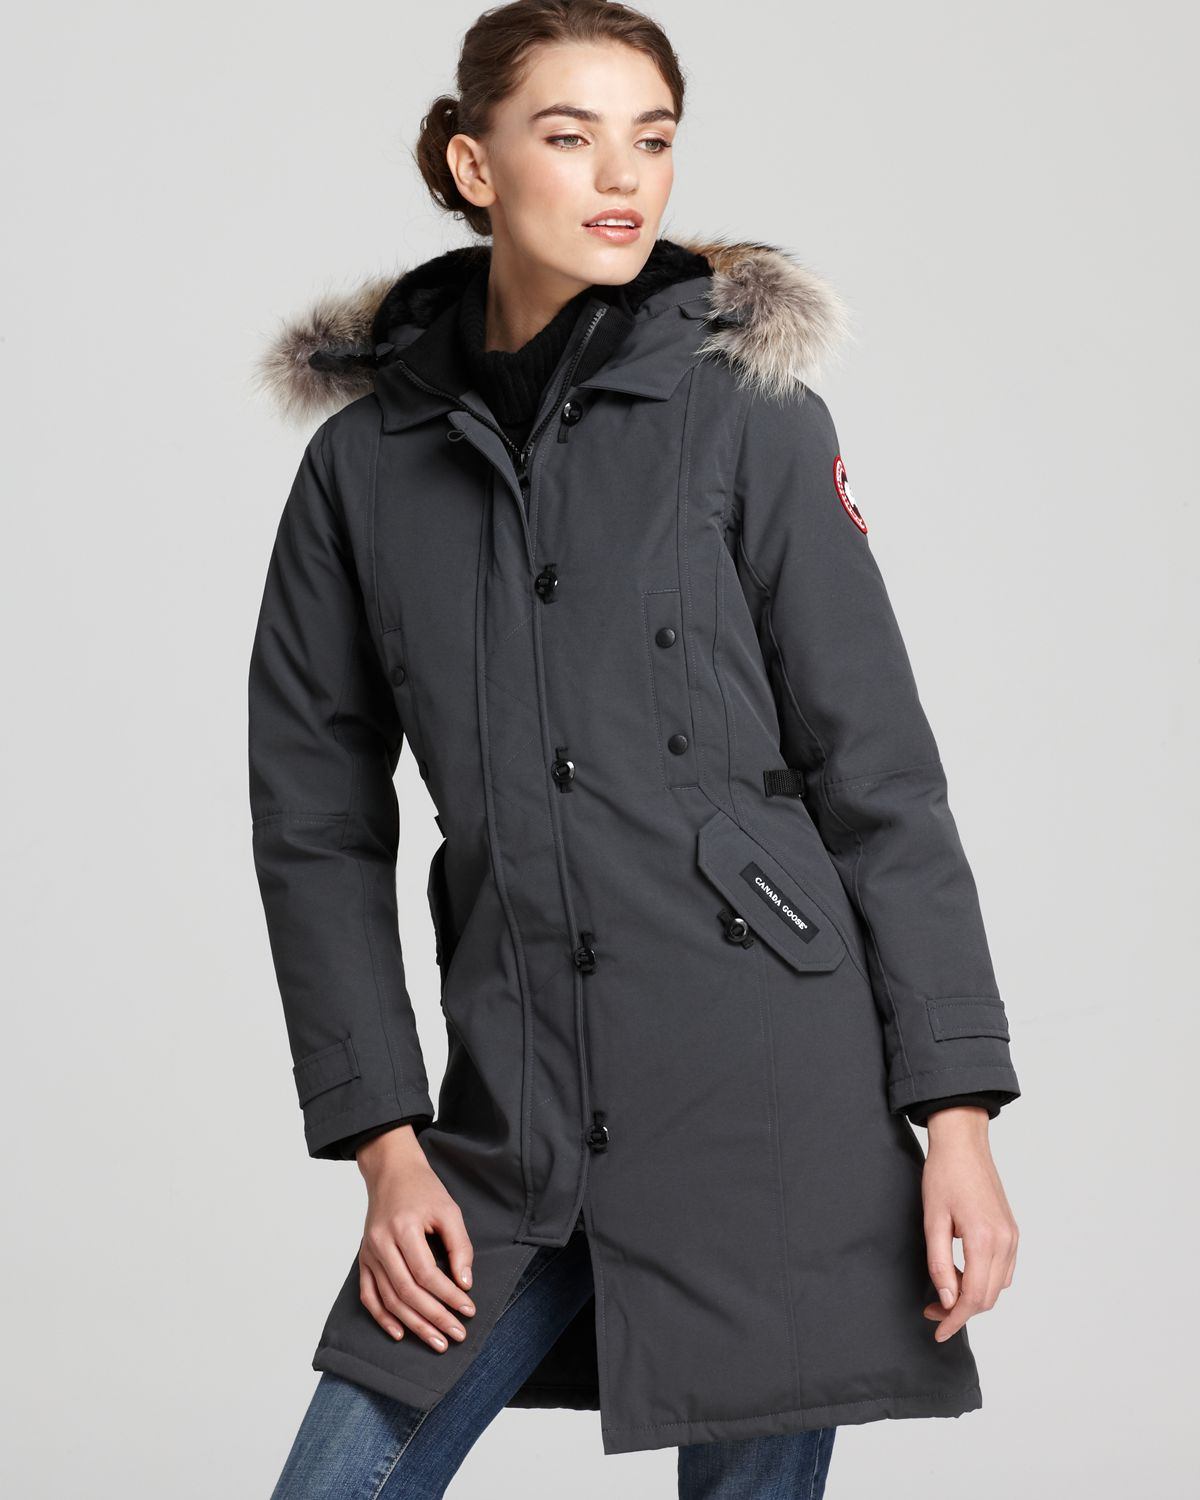 Canada Goose victoria parka sale authentic - Canada goose Kensington Parka in Gray (Graphite) | Lyst